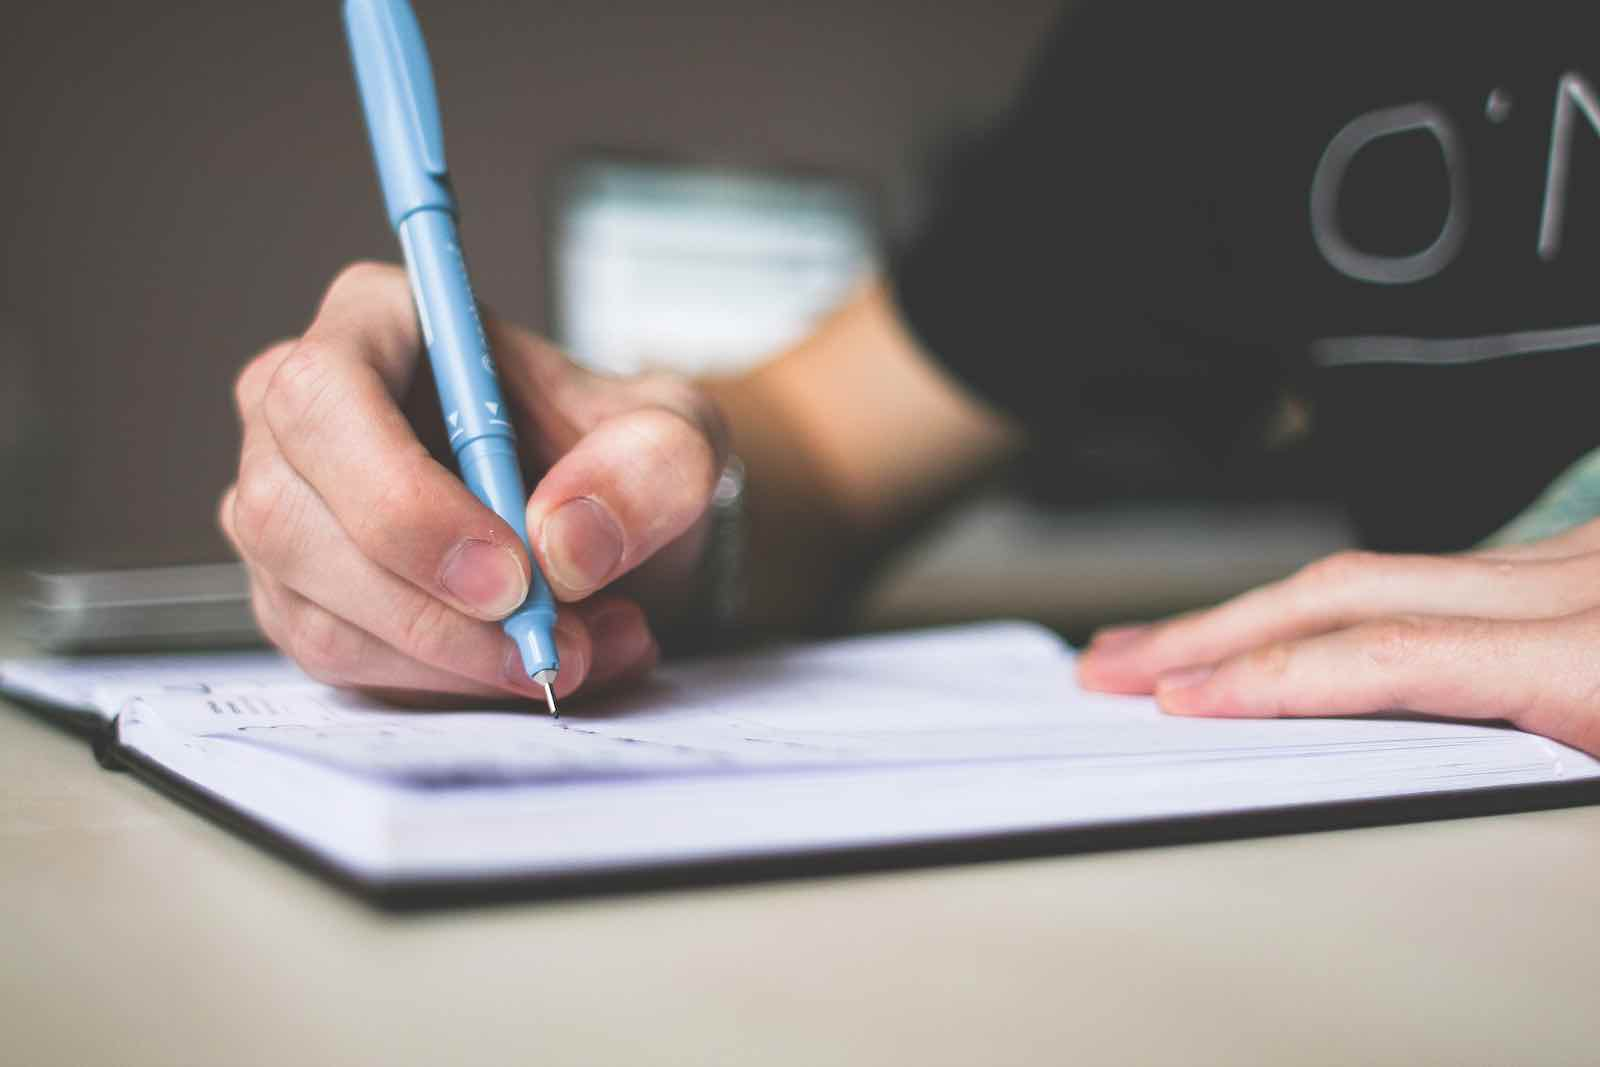 Sometimes you need a little extra help getting your writing cleaned up. Here's a guide to finding the best essay writer for all subjects.